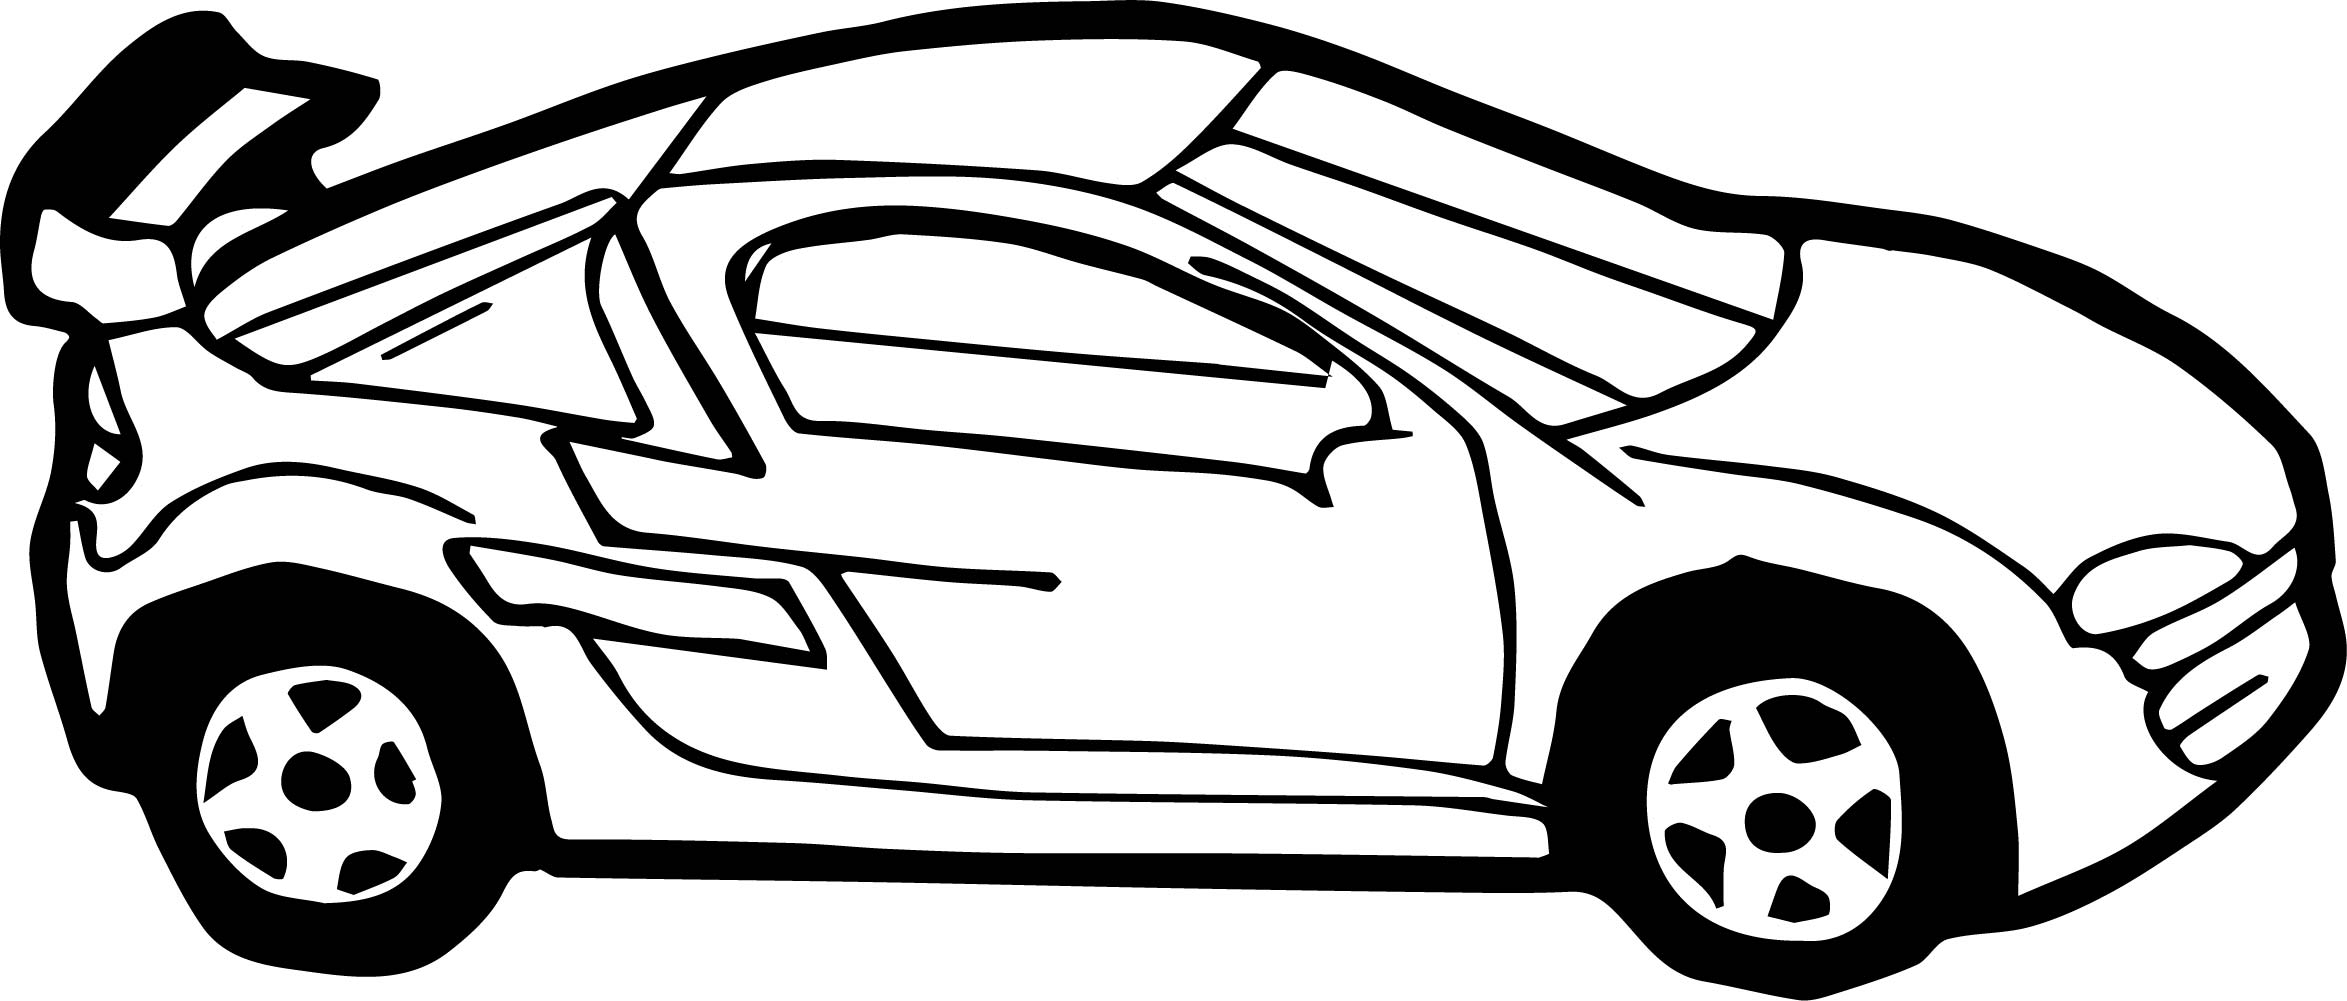 Car Coloring Pages Side View : Coloring car side view pages